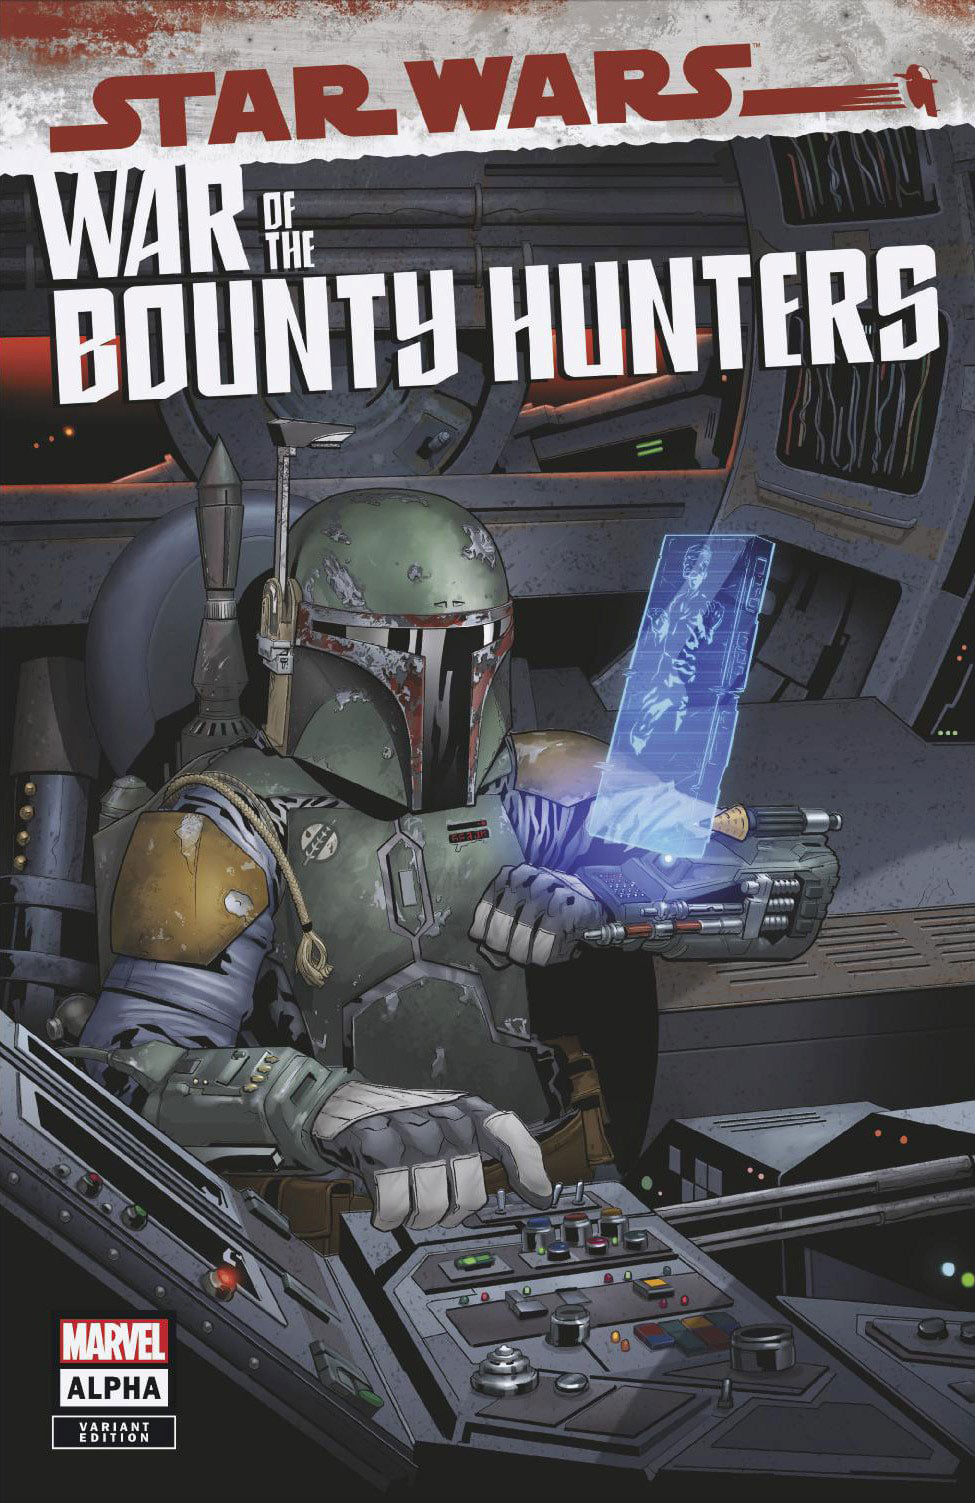 Star Wars: War of the Bounty Hunters Alpha - Jetpack Comics Variant